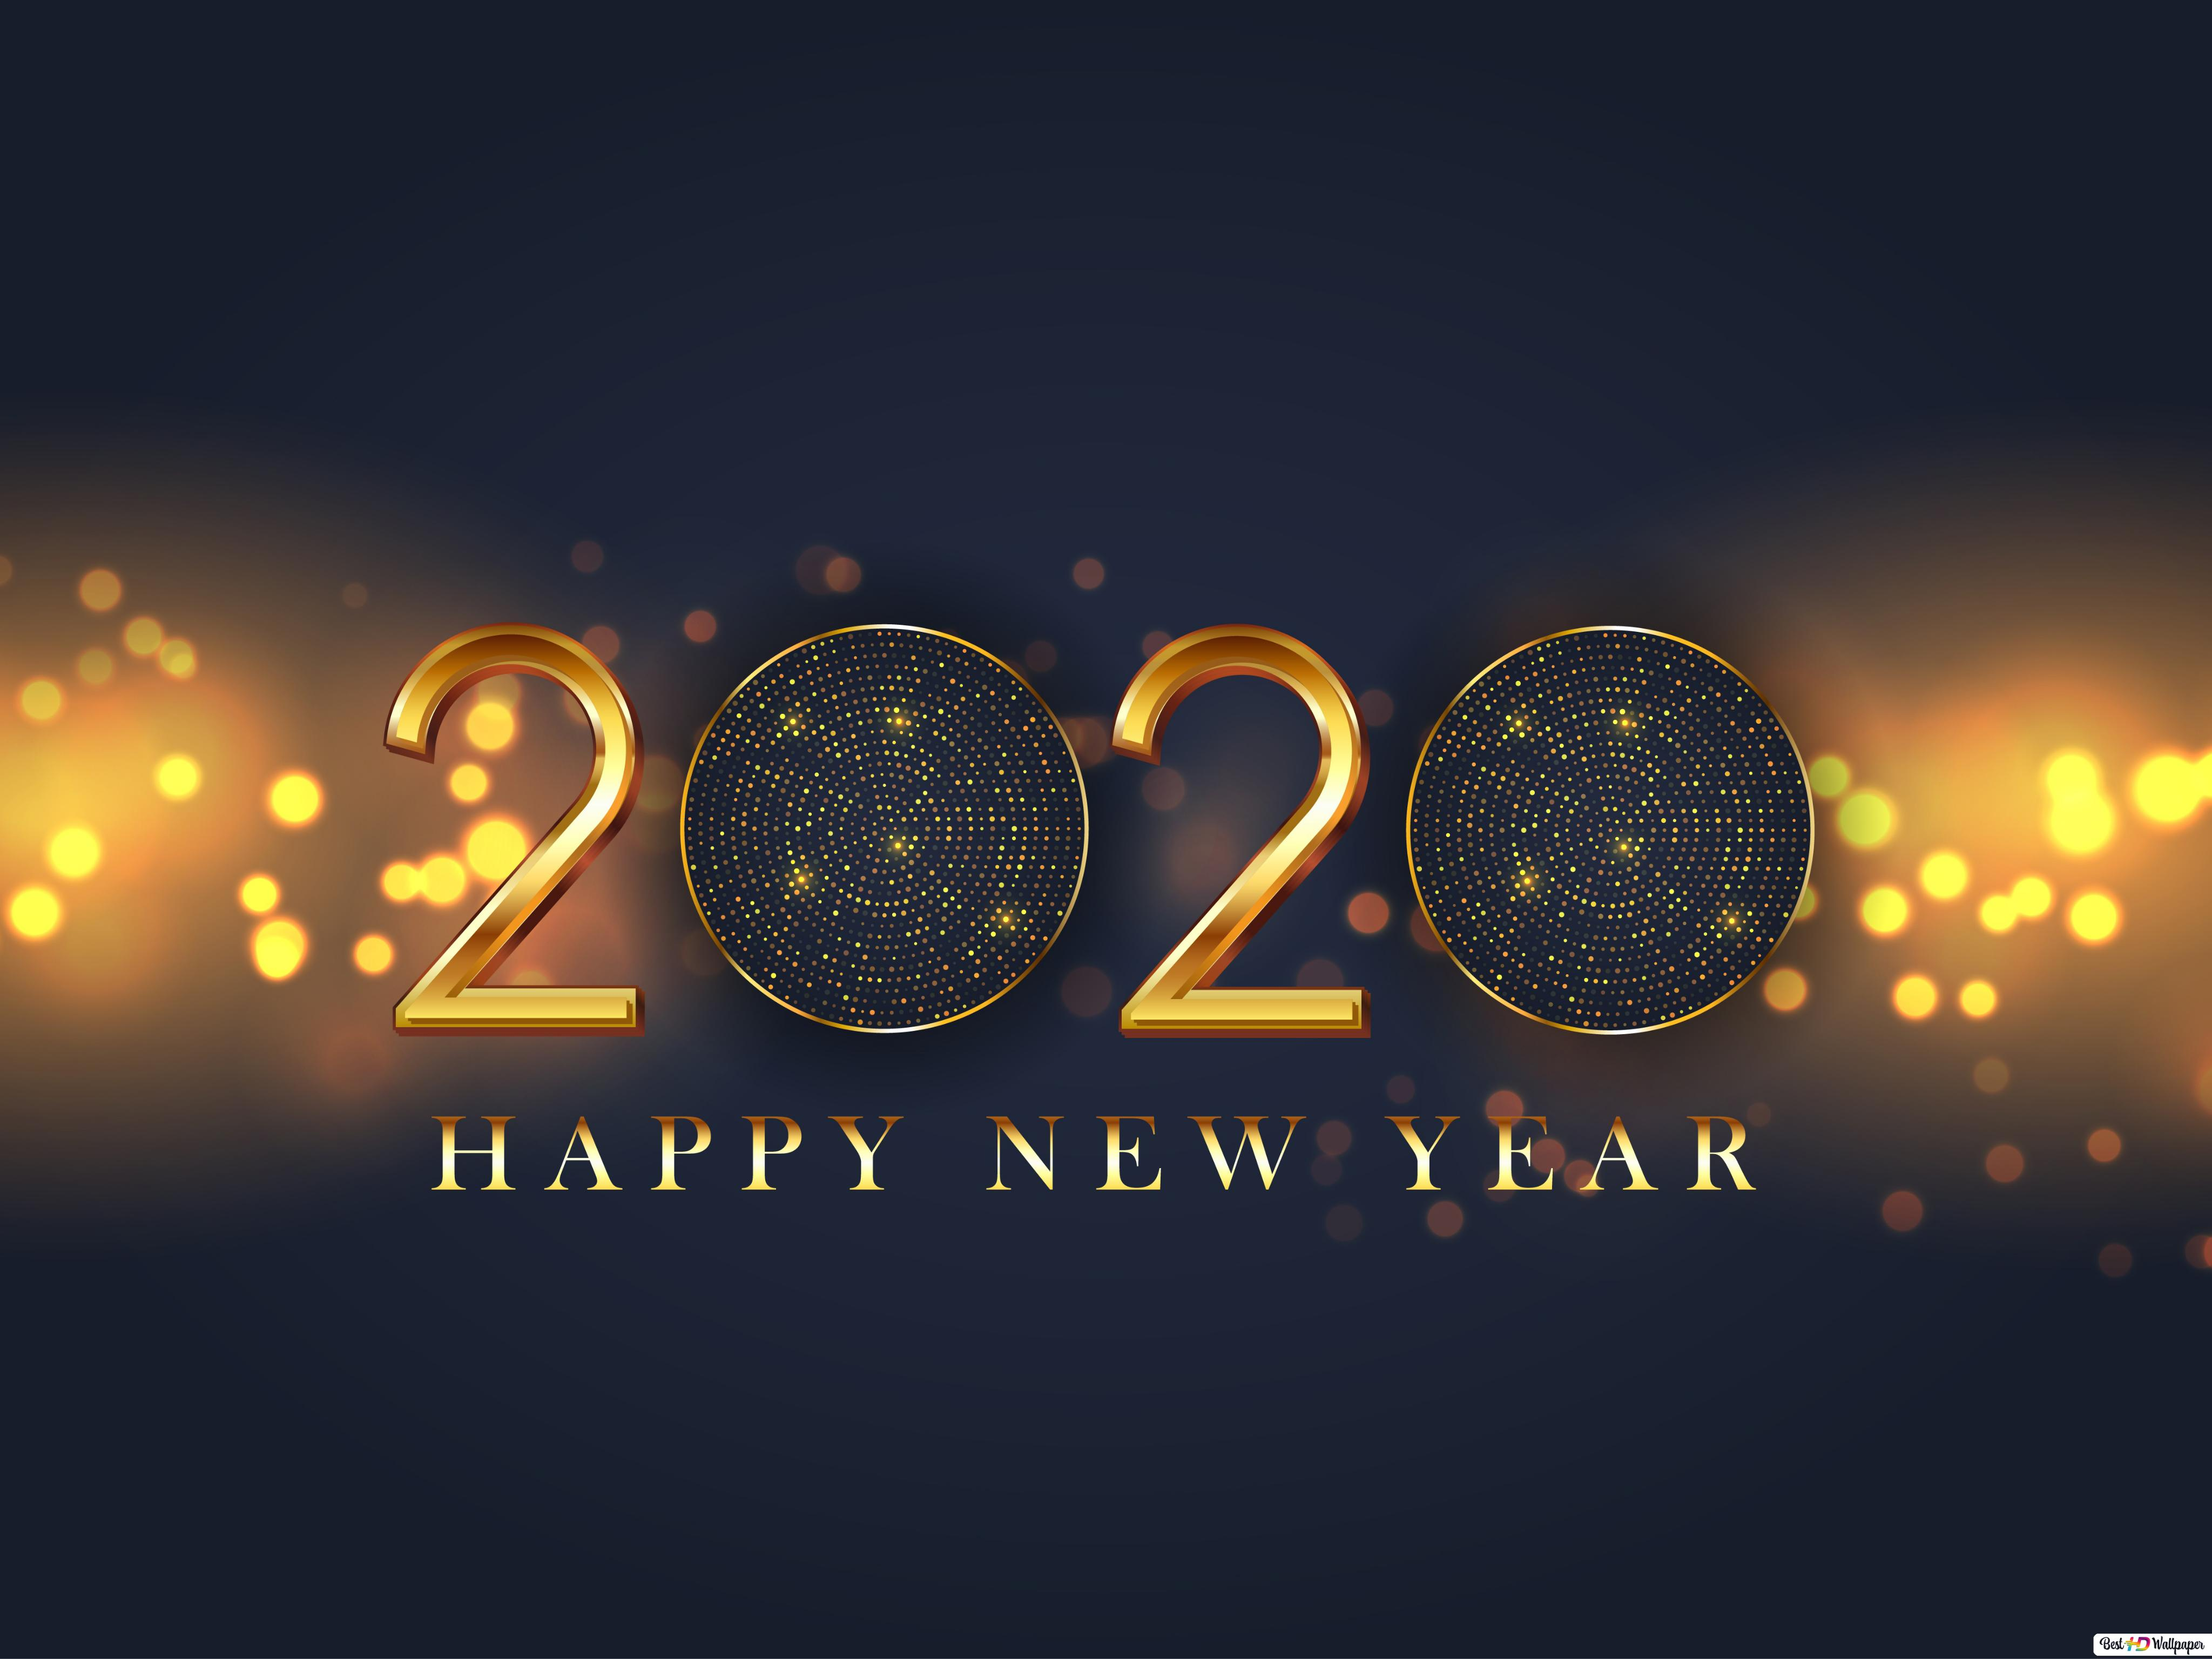 Black And Gold 2020 Greetings With Golden Lights Background Hd